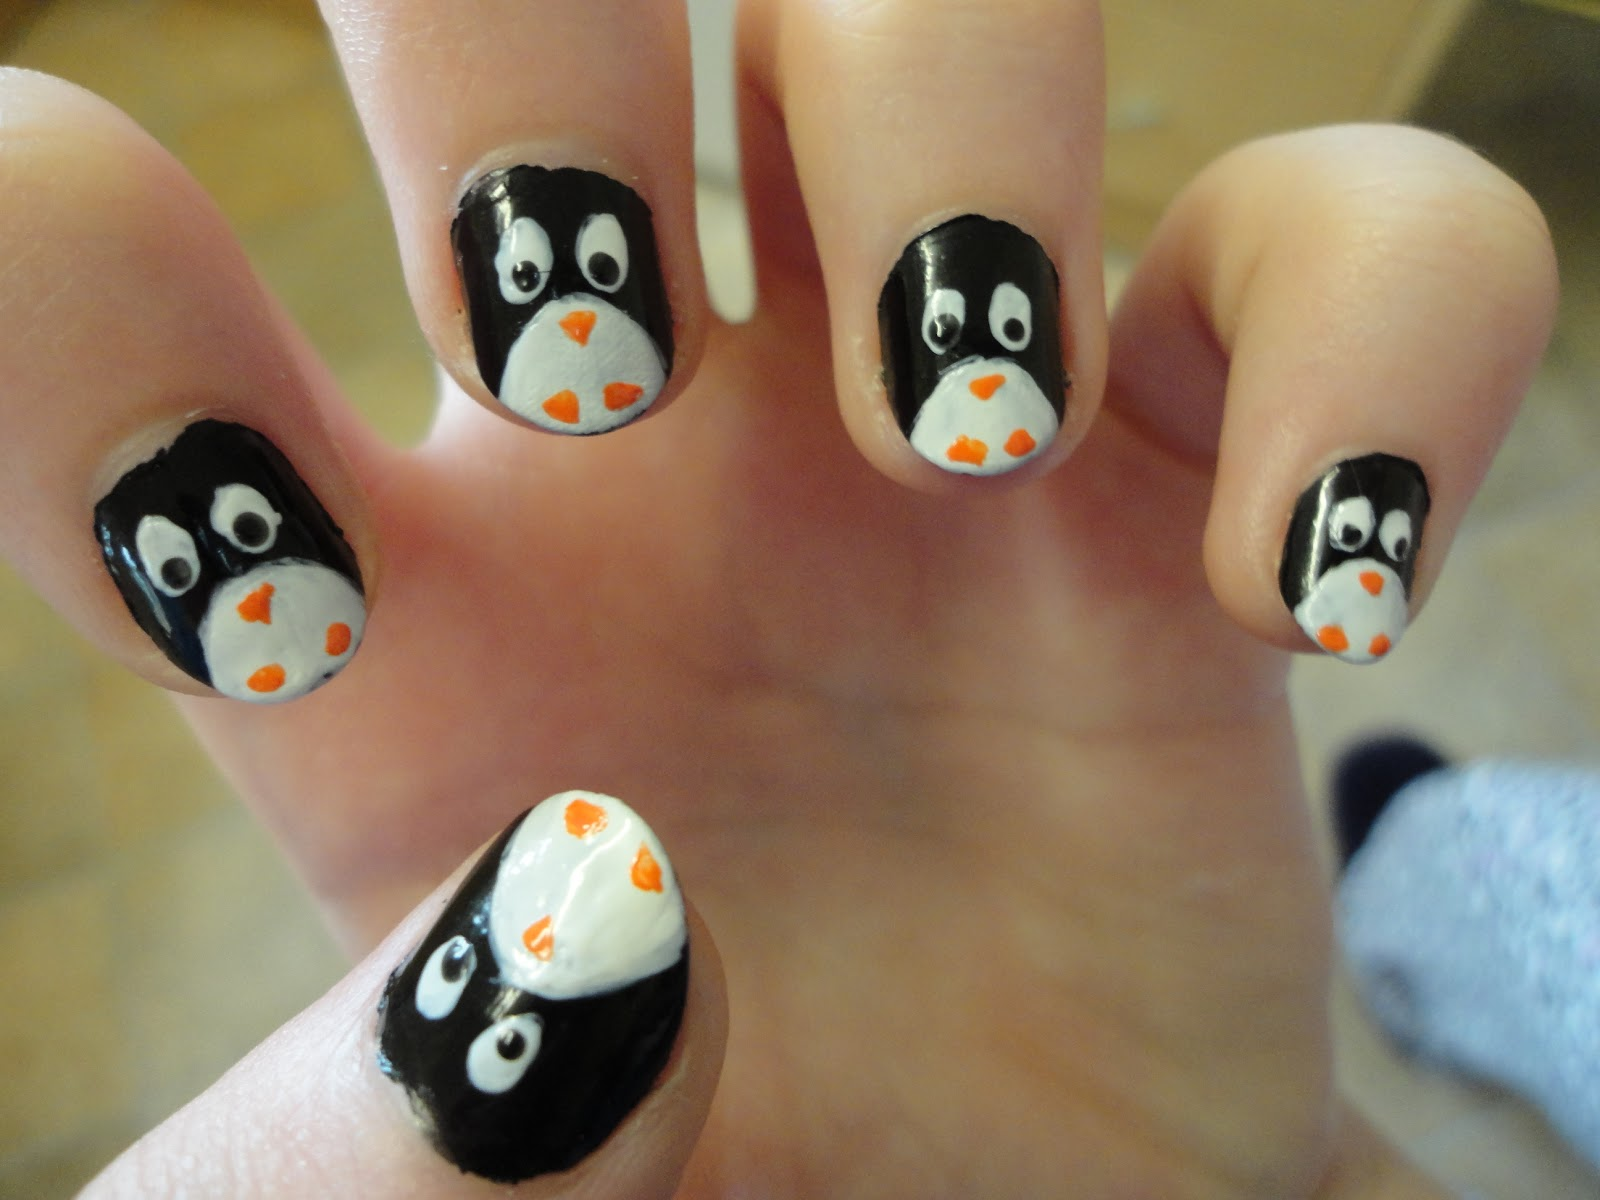 Nail art for Penguin & Newspaper nails: | Fashion Art_A2Z